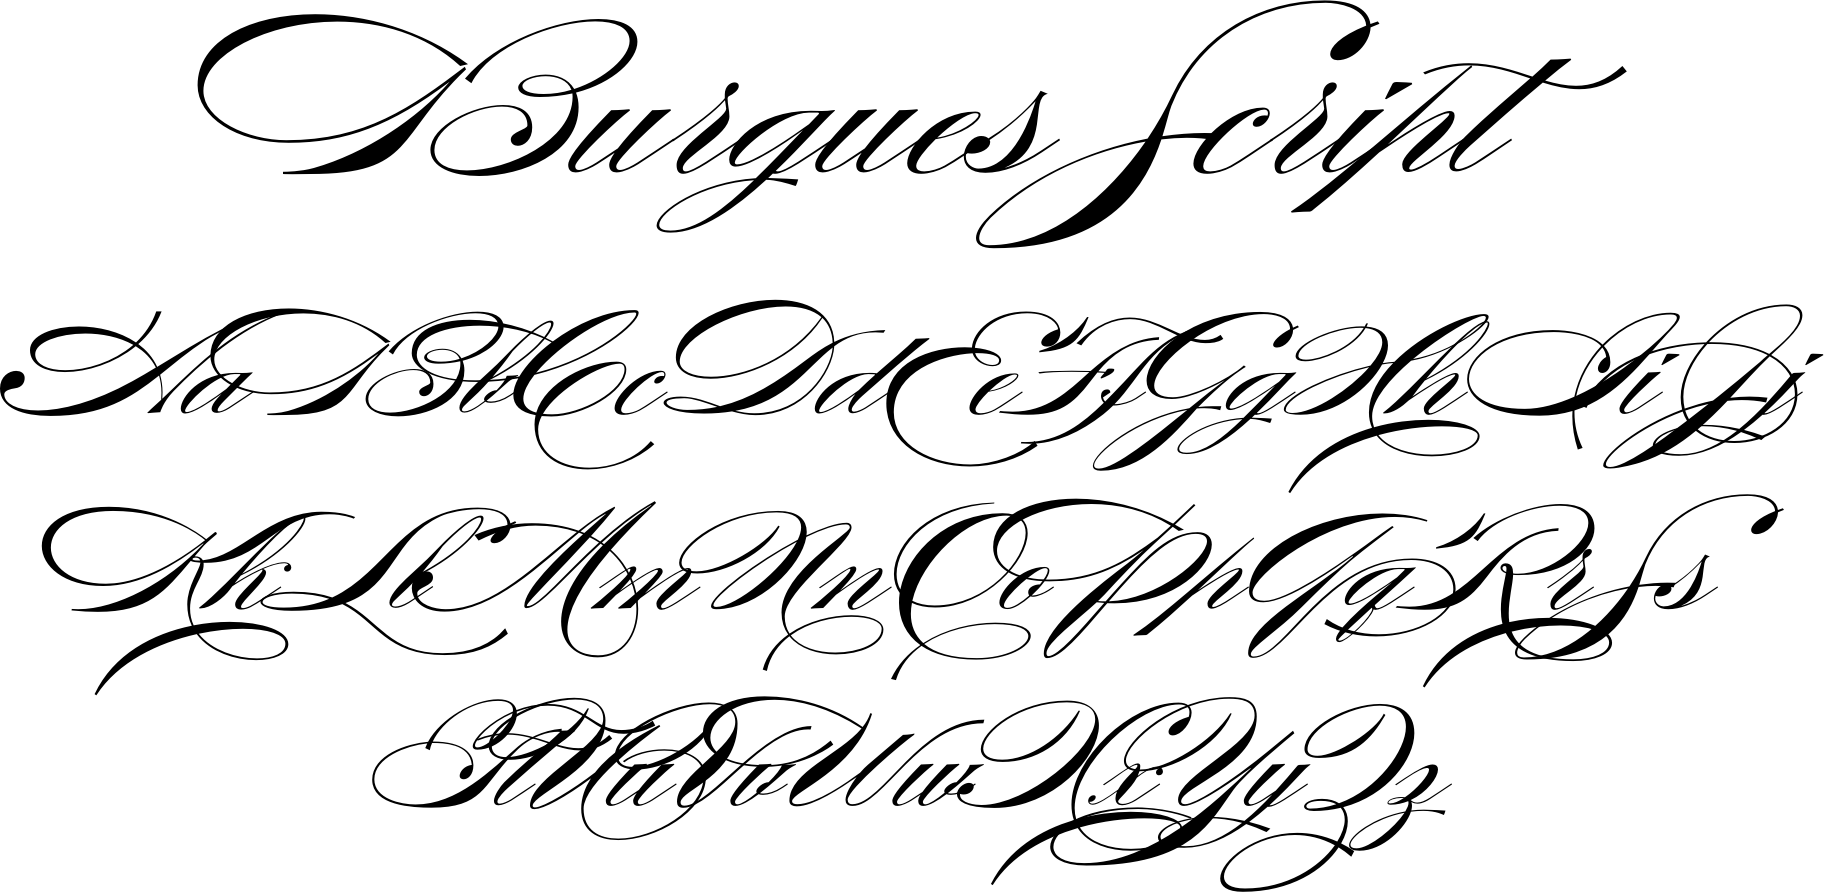 Burgues Script Is An Ode To The Late 19th Century American